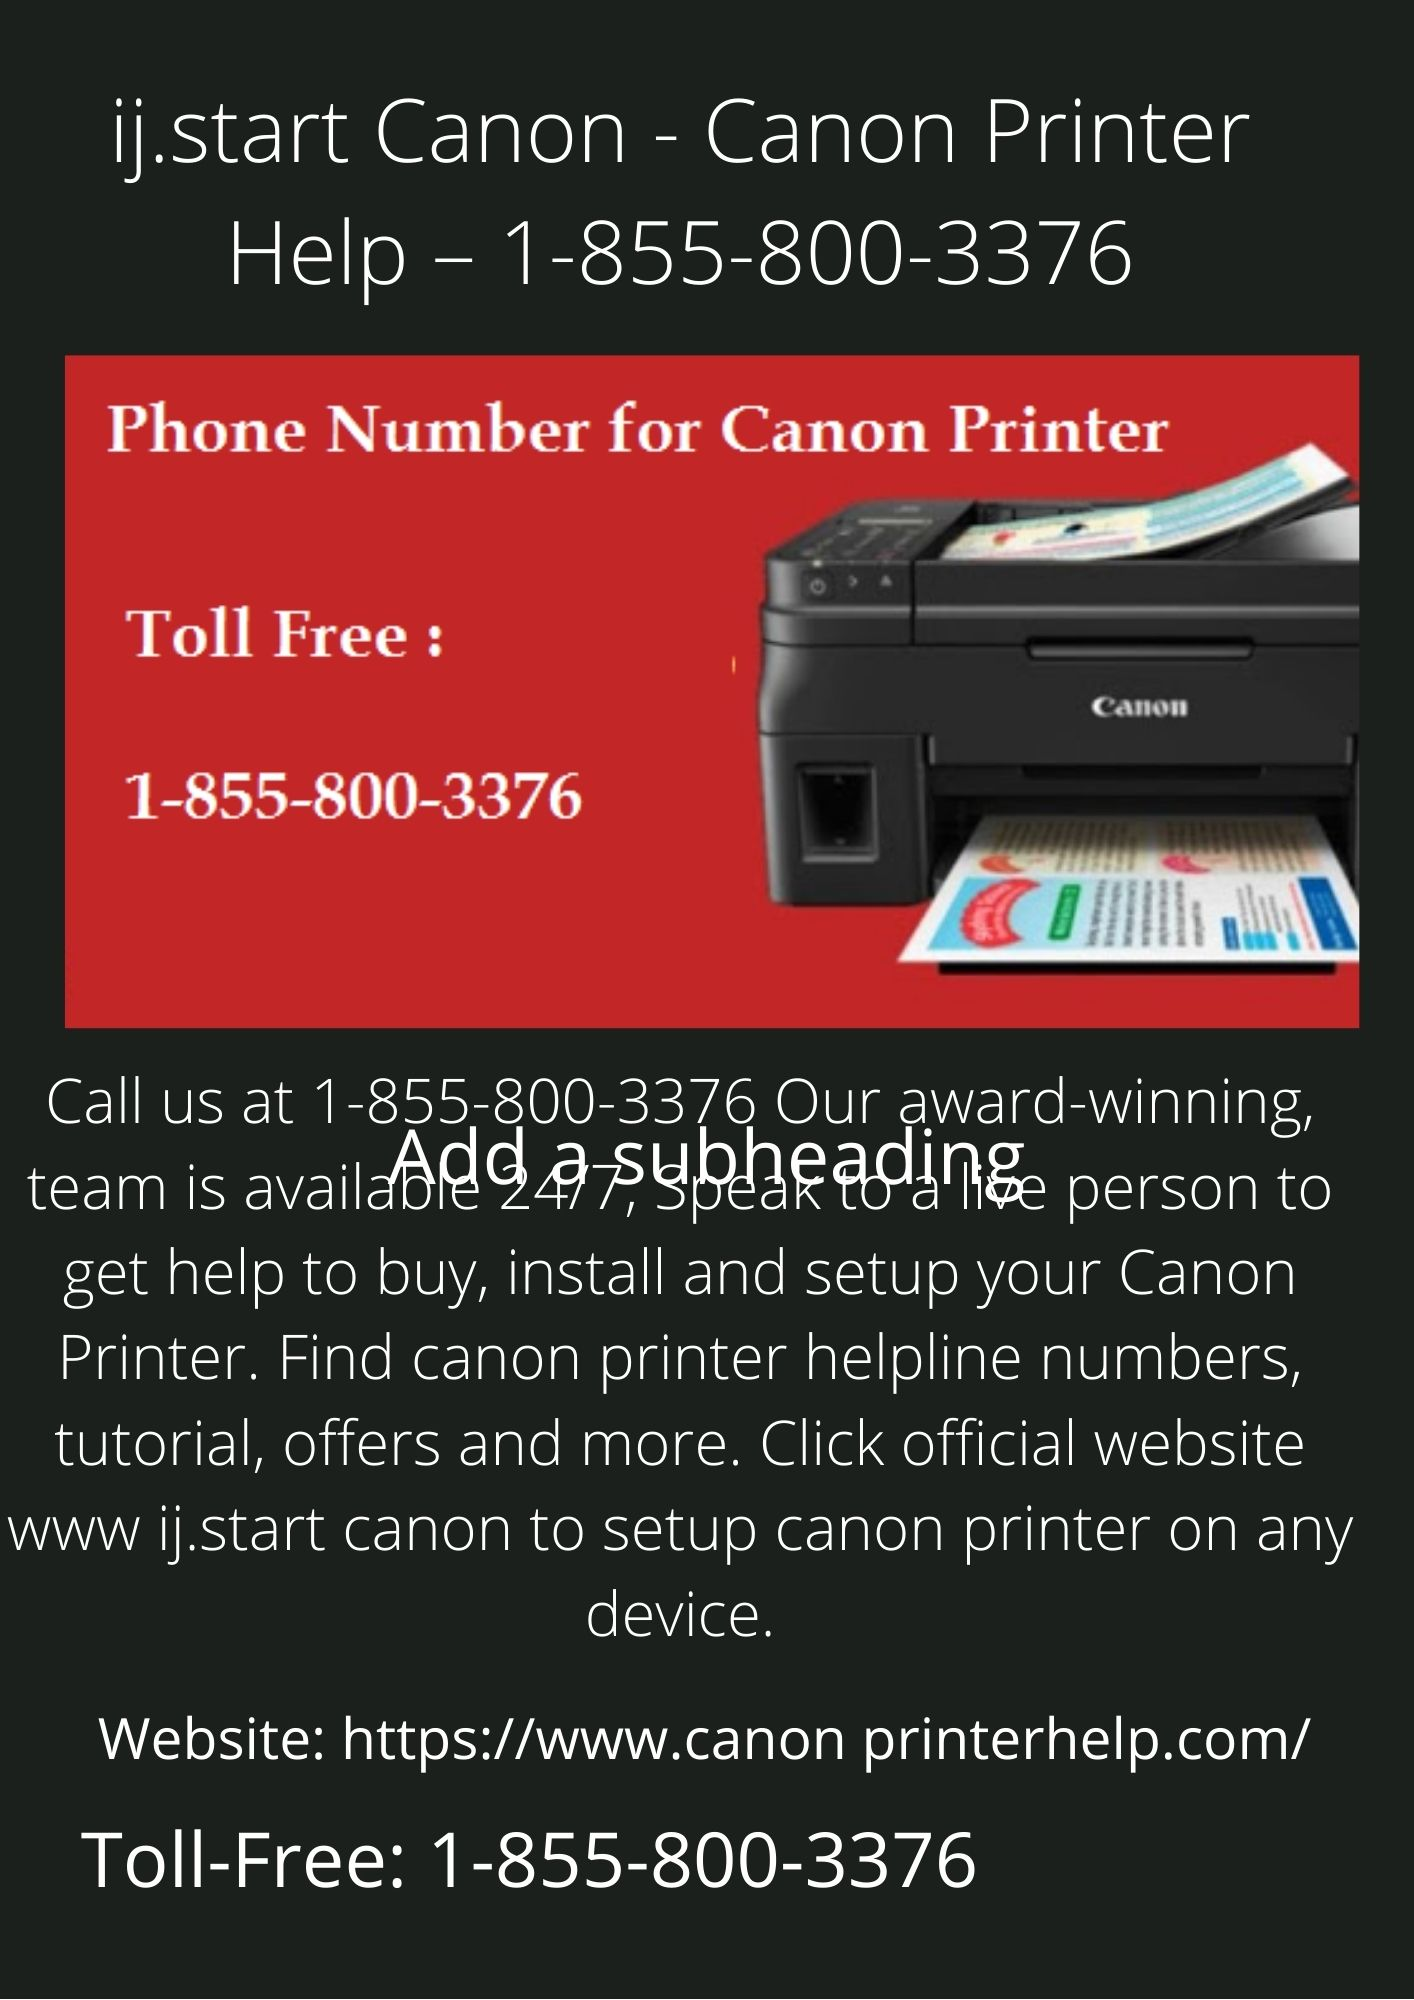 324Phone_Number_for_Canon.jpg